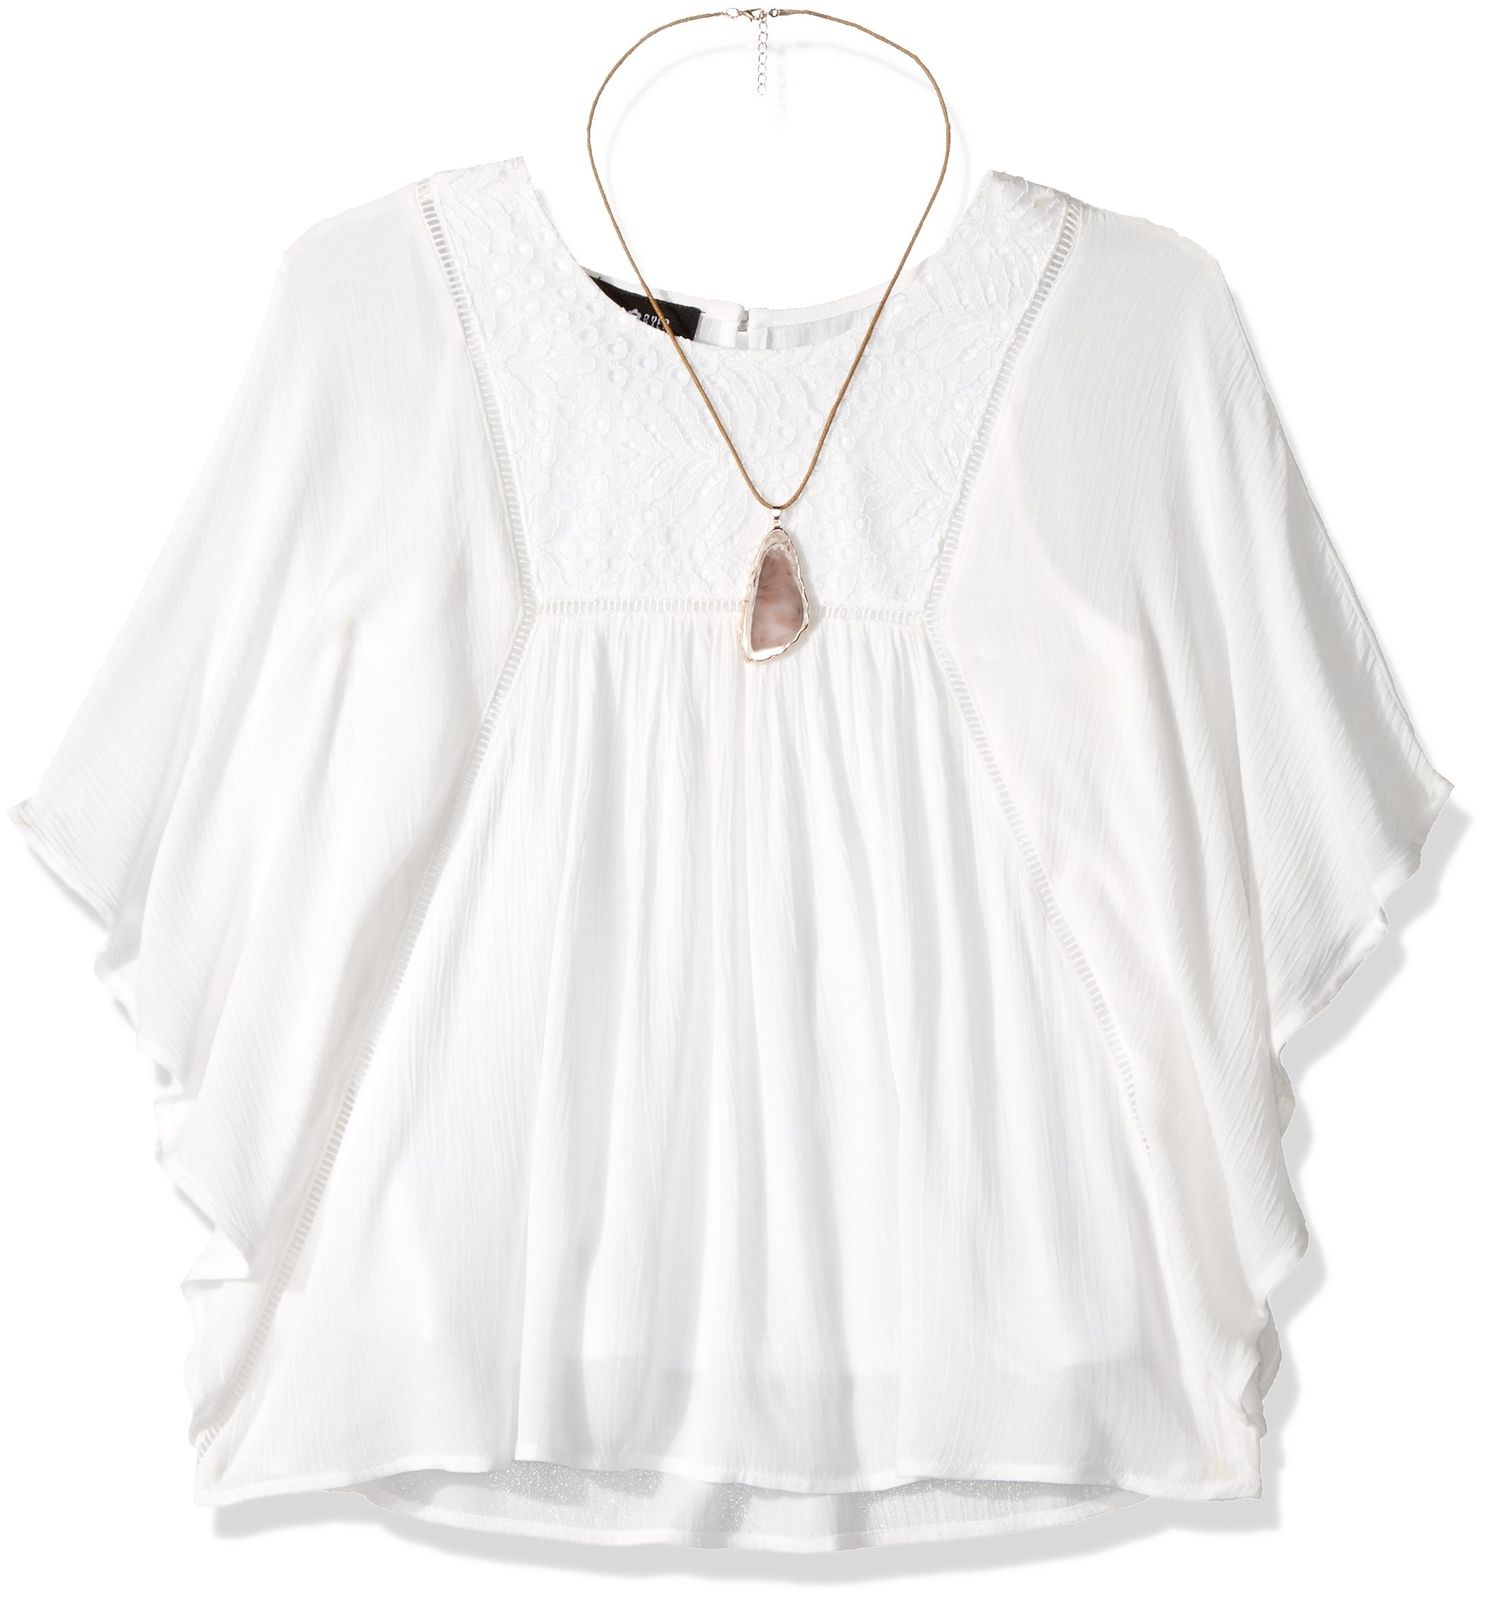 Amy-Byer-NEW-White-Girls-Size-Small-S-7-8-Poncho-Wing-Sleeve-Lace-Top-824